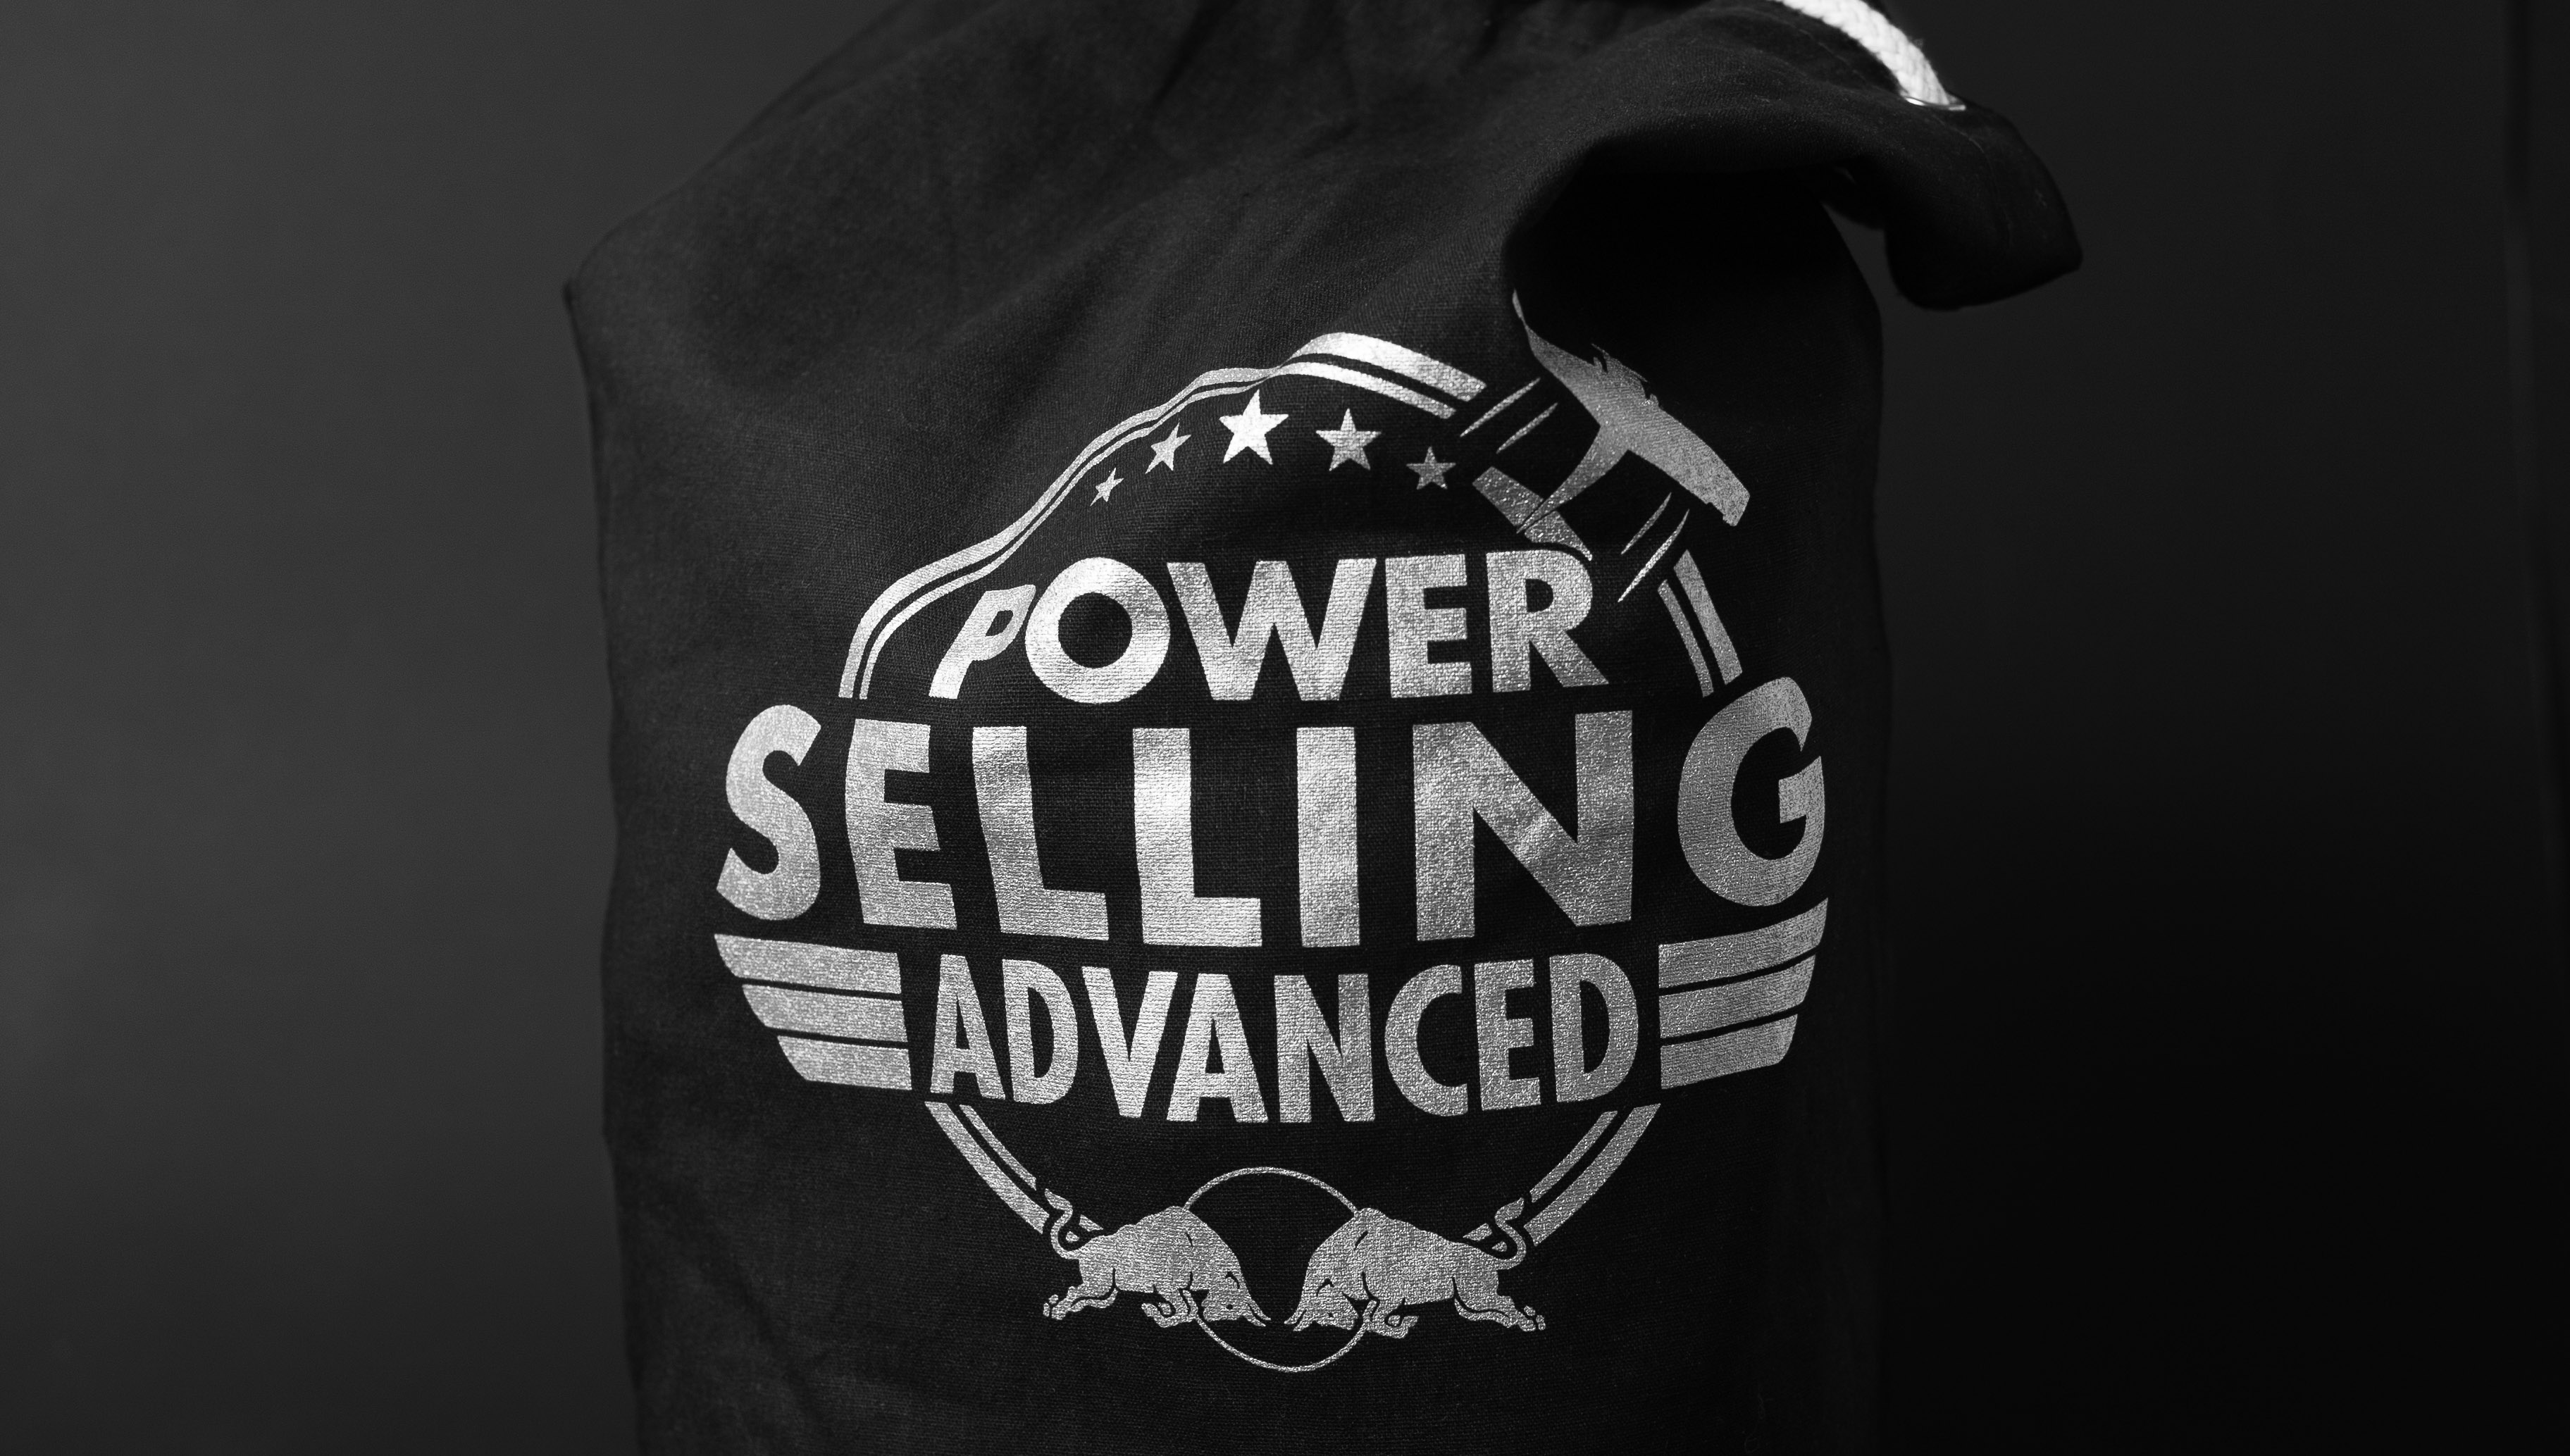 Power Selling Advanced